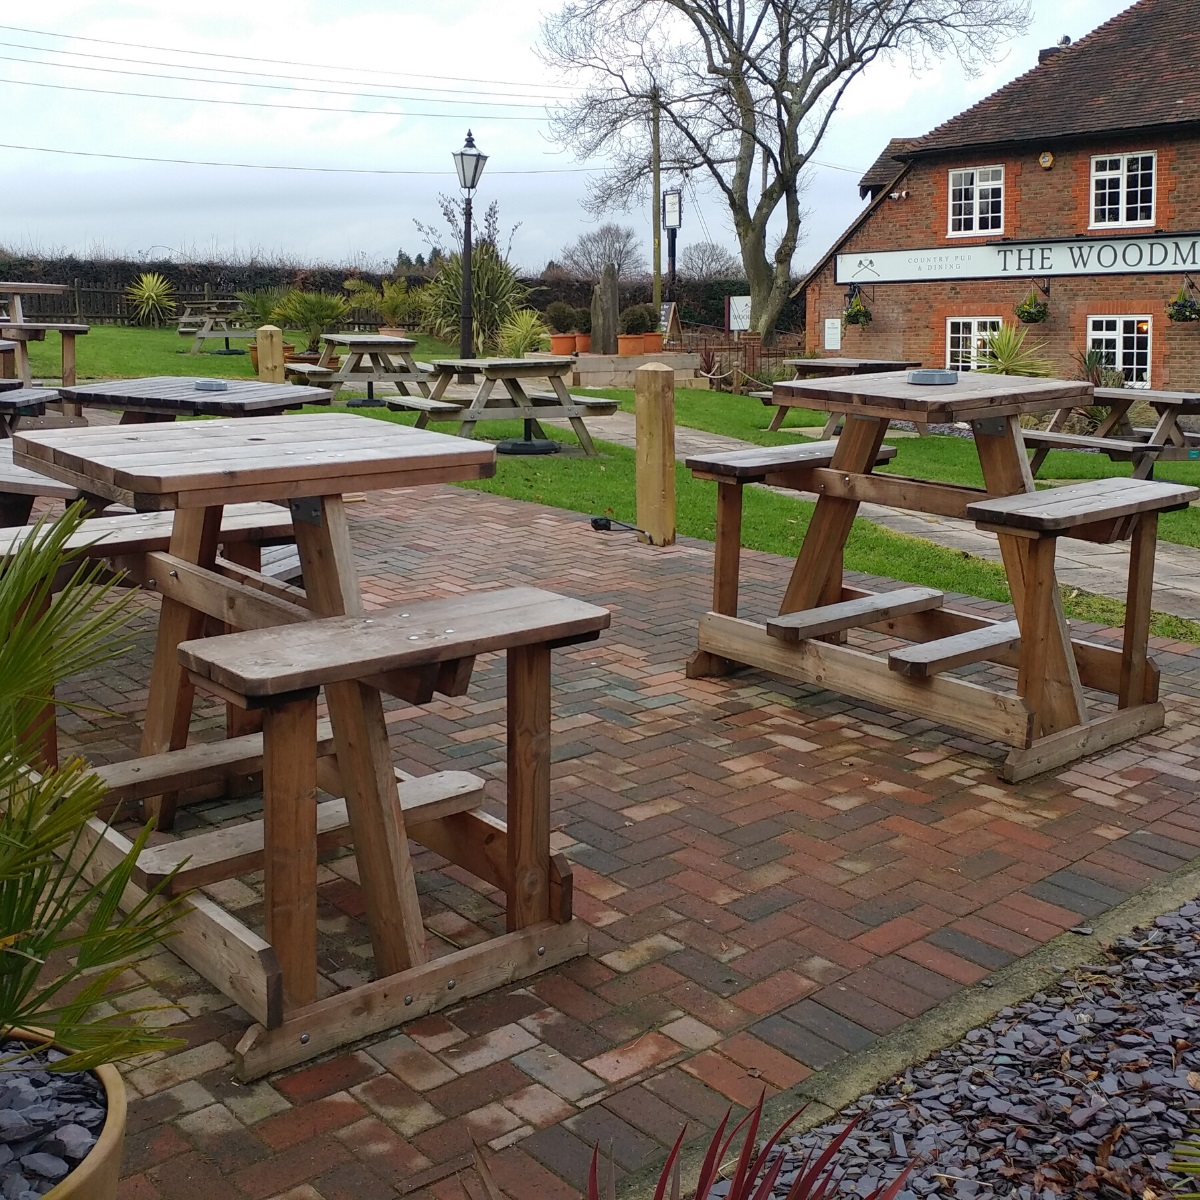 A variety of different picnic tables round square and rectangular ones in a pub garden